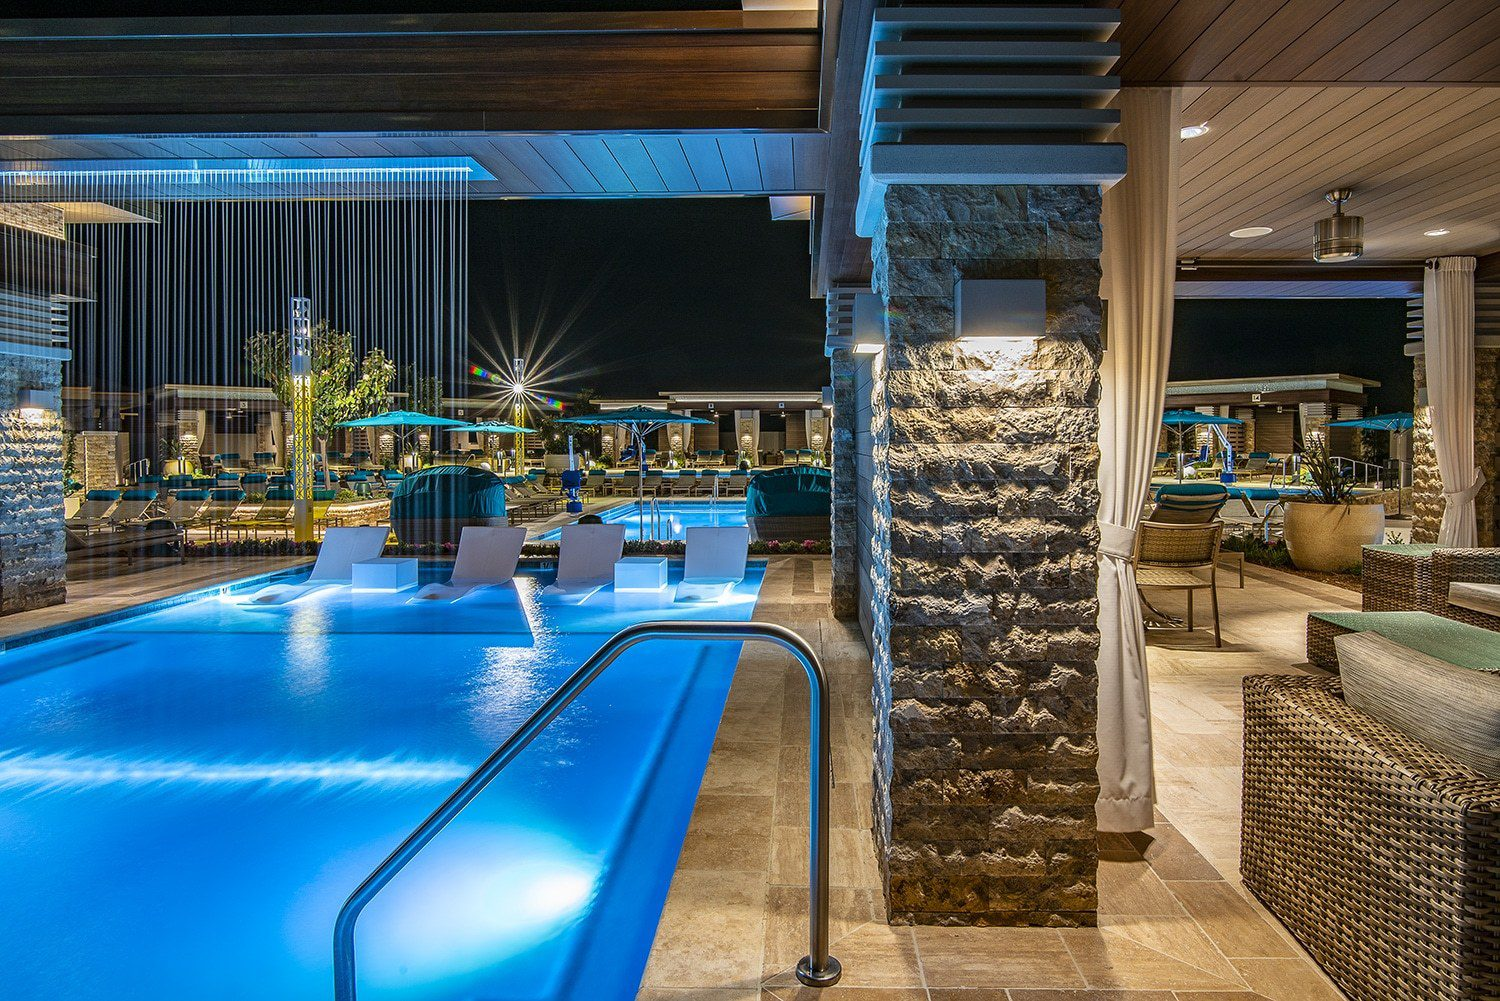 The Pala Casino Spa & Resort's New Pool Complex 4